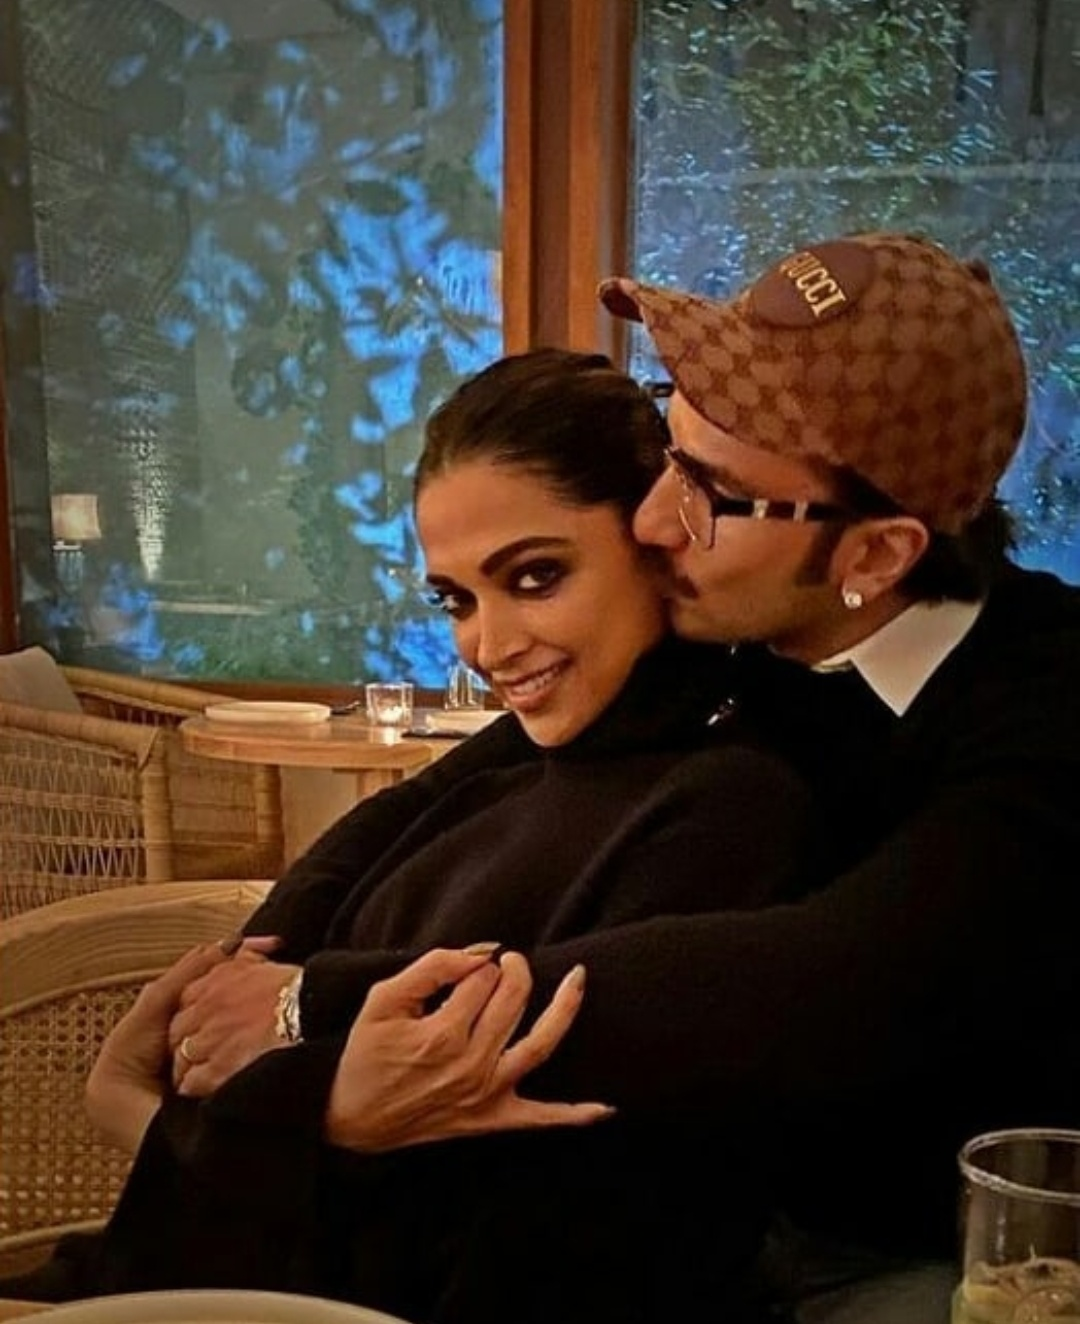 Deepika-Padukone-celebrated-her-birthday-in-a-special-way-fans-congratulated-strongly-on-social-media